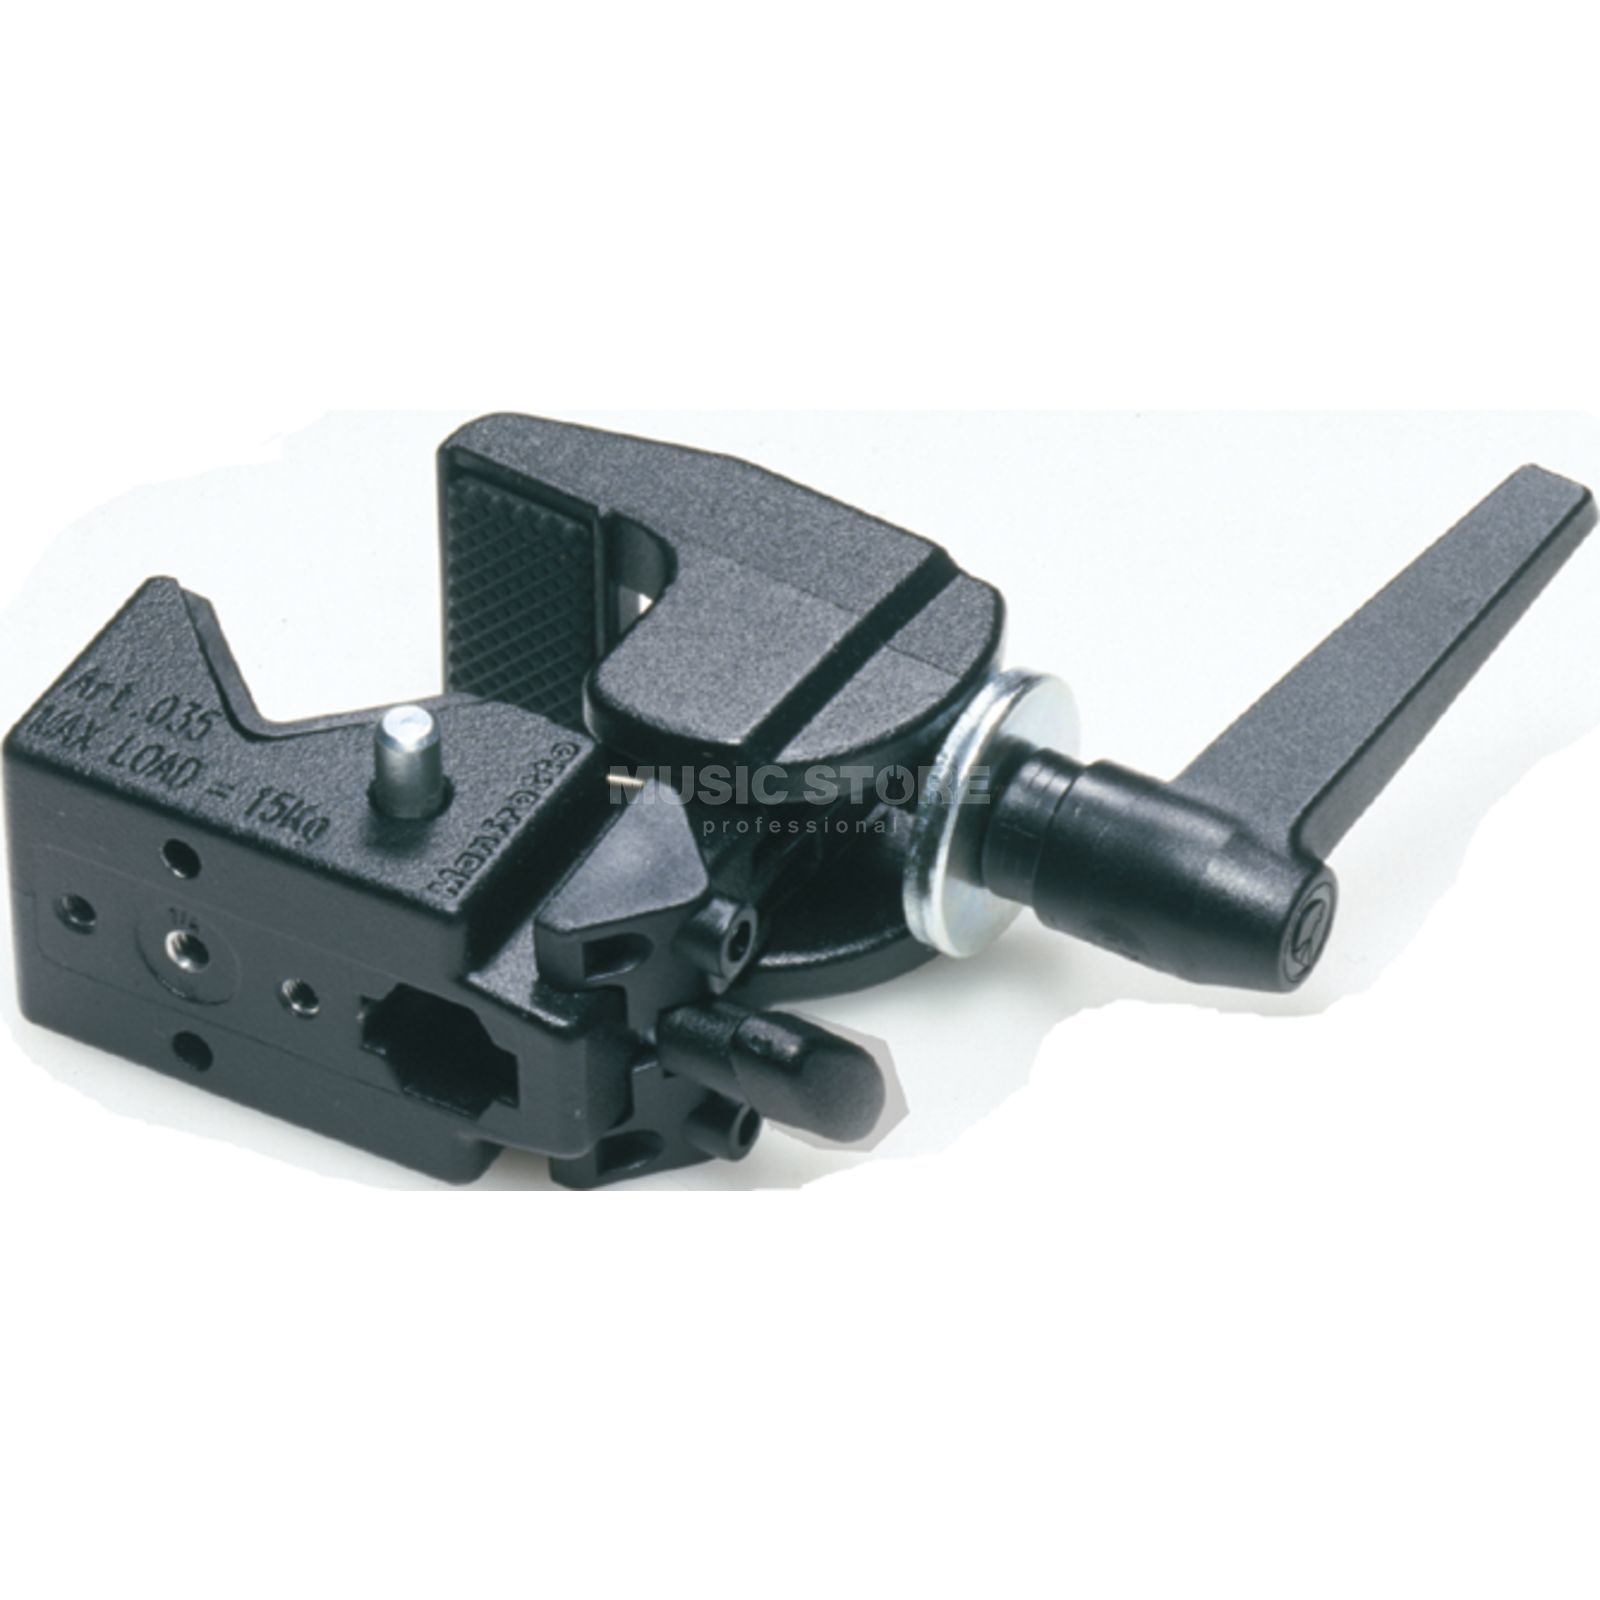 Manfrotto 035 Super Clamp  Produktbild